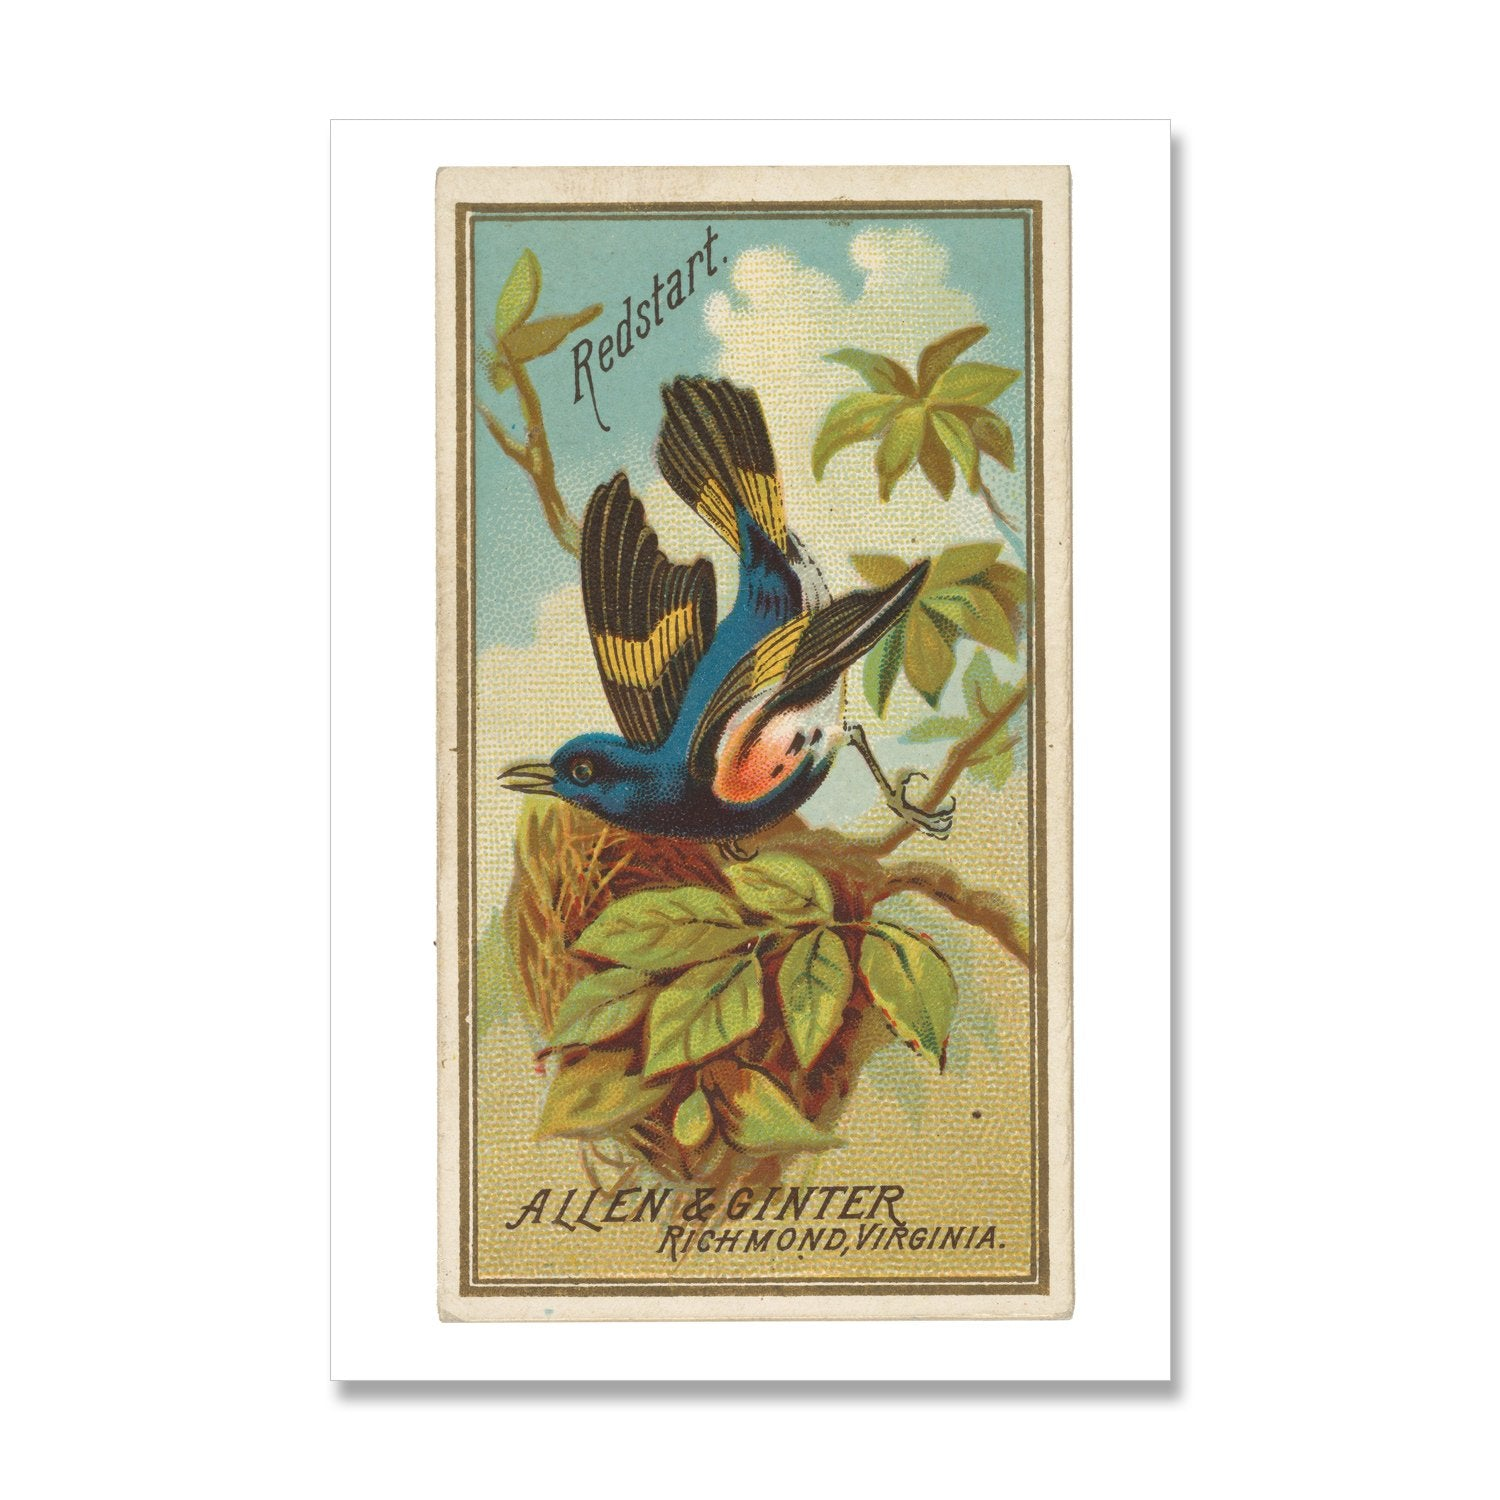 giclee print of redstart bird, vintage cigarette card design